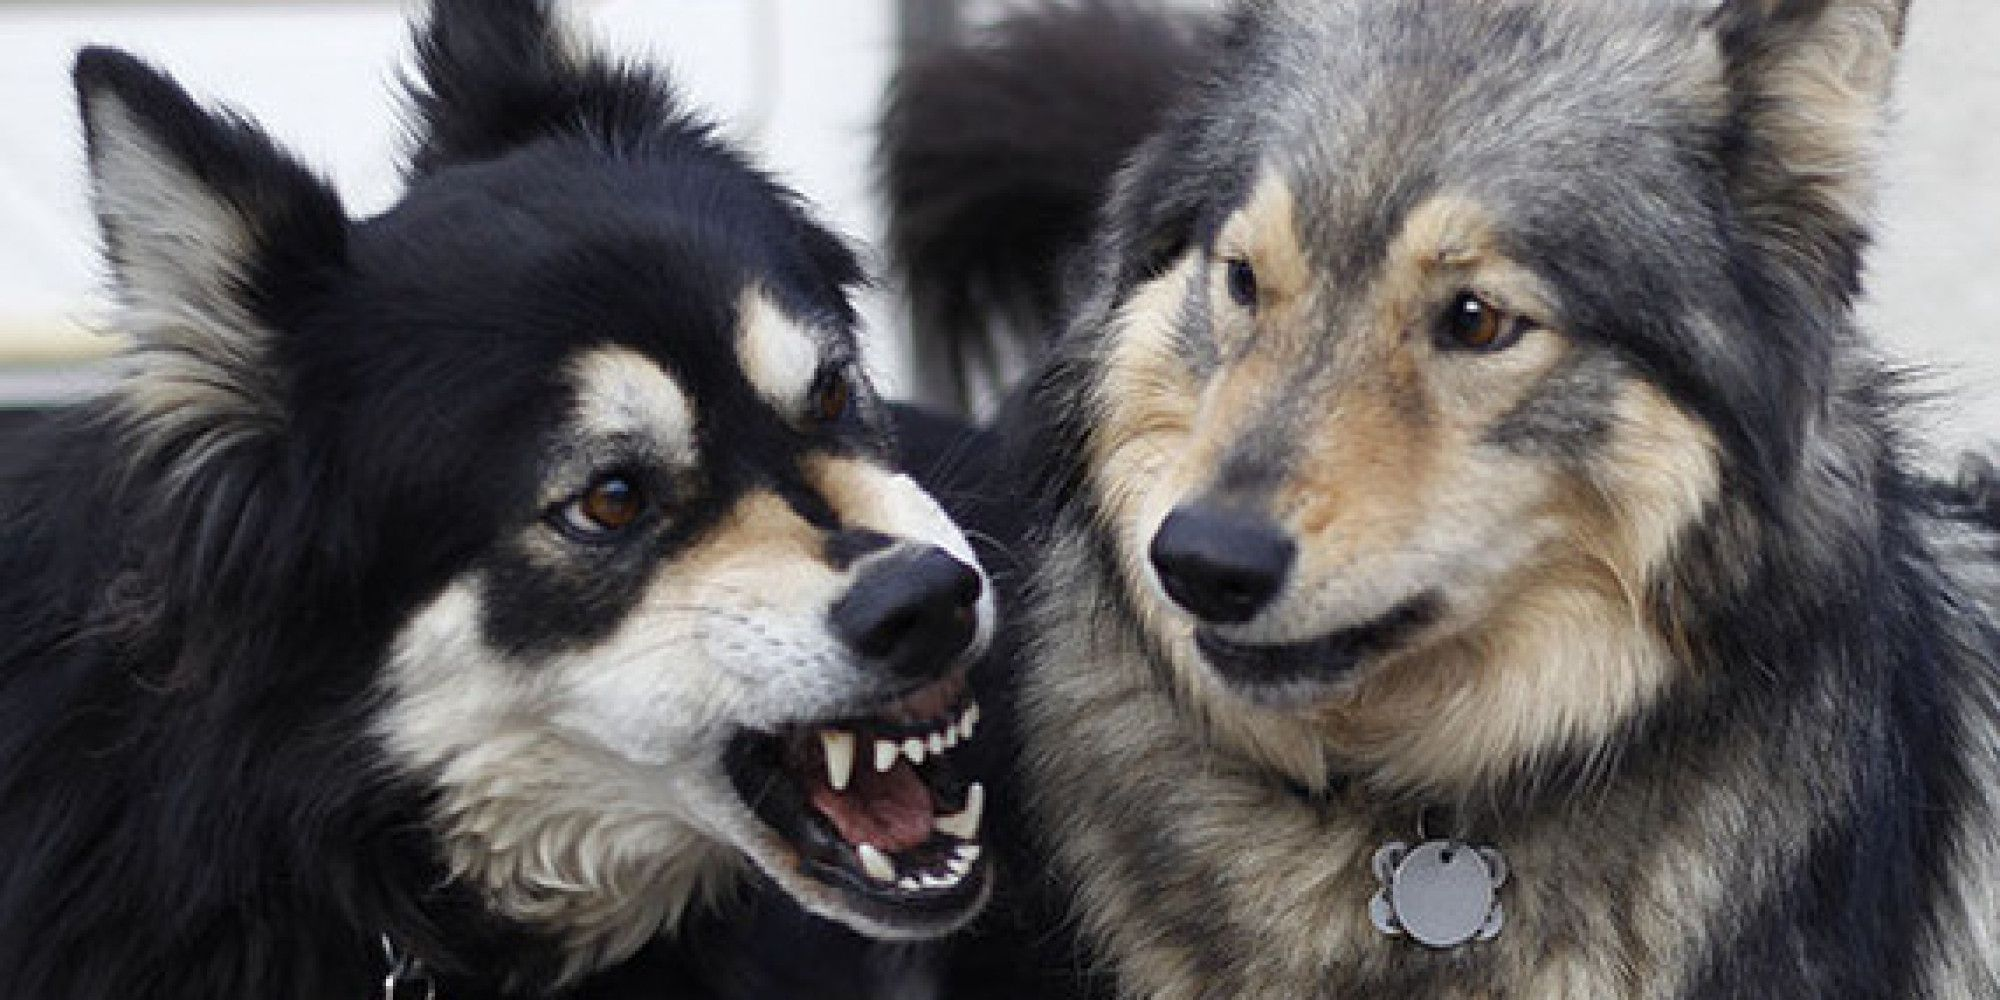 Your dogs are fighting step in or step off dog dog health care